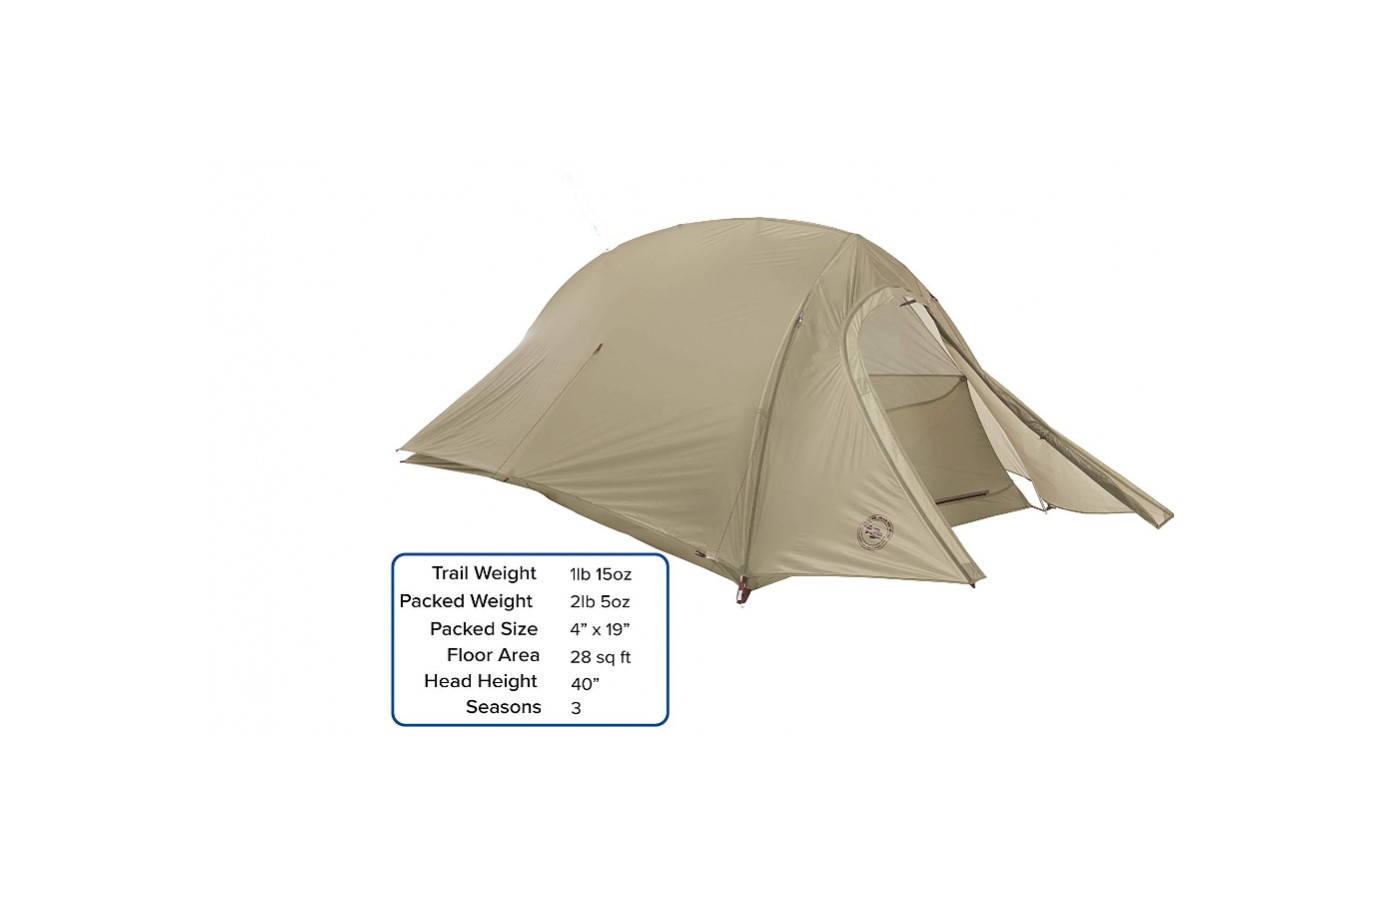 You get one of the most lightweight tents on the market with this model.